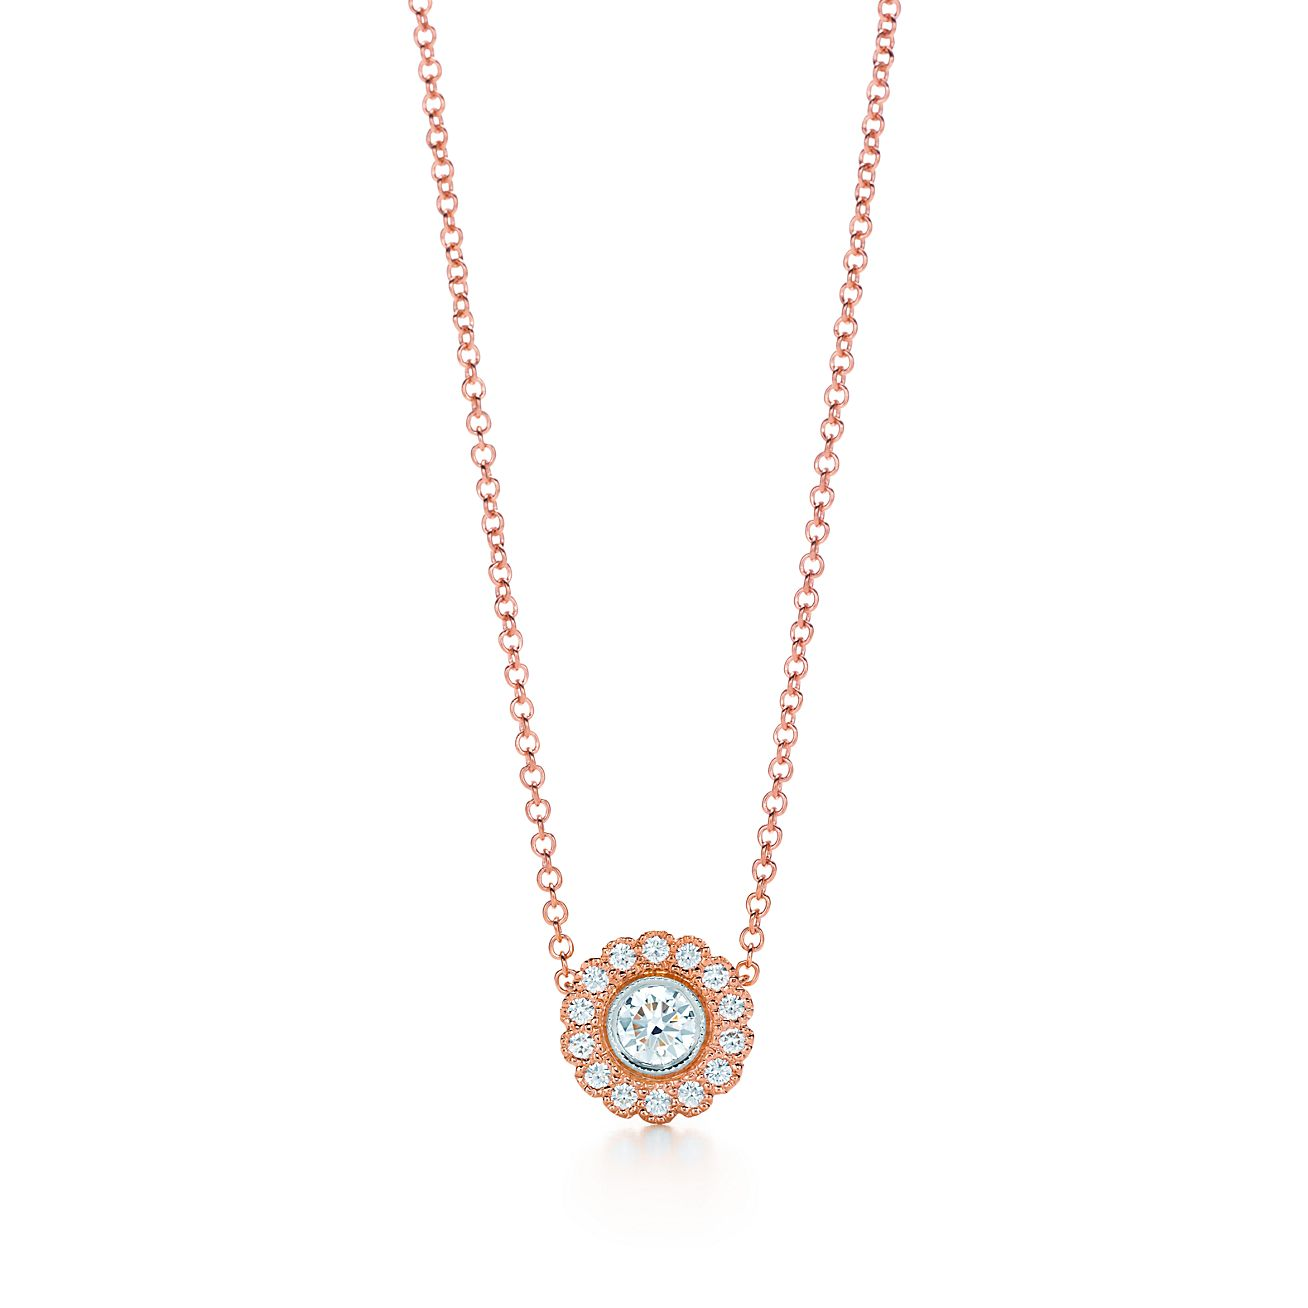 Tiffany enchant flower pendant in 18k rose gold and platinum with tiffany enchantflower pendant mozeypictures Image collections